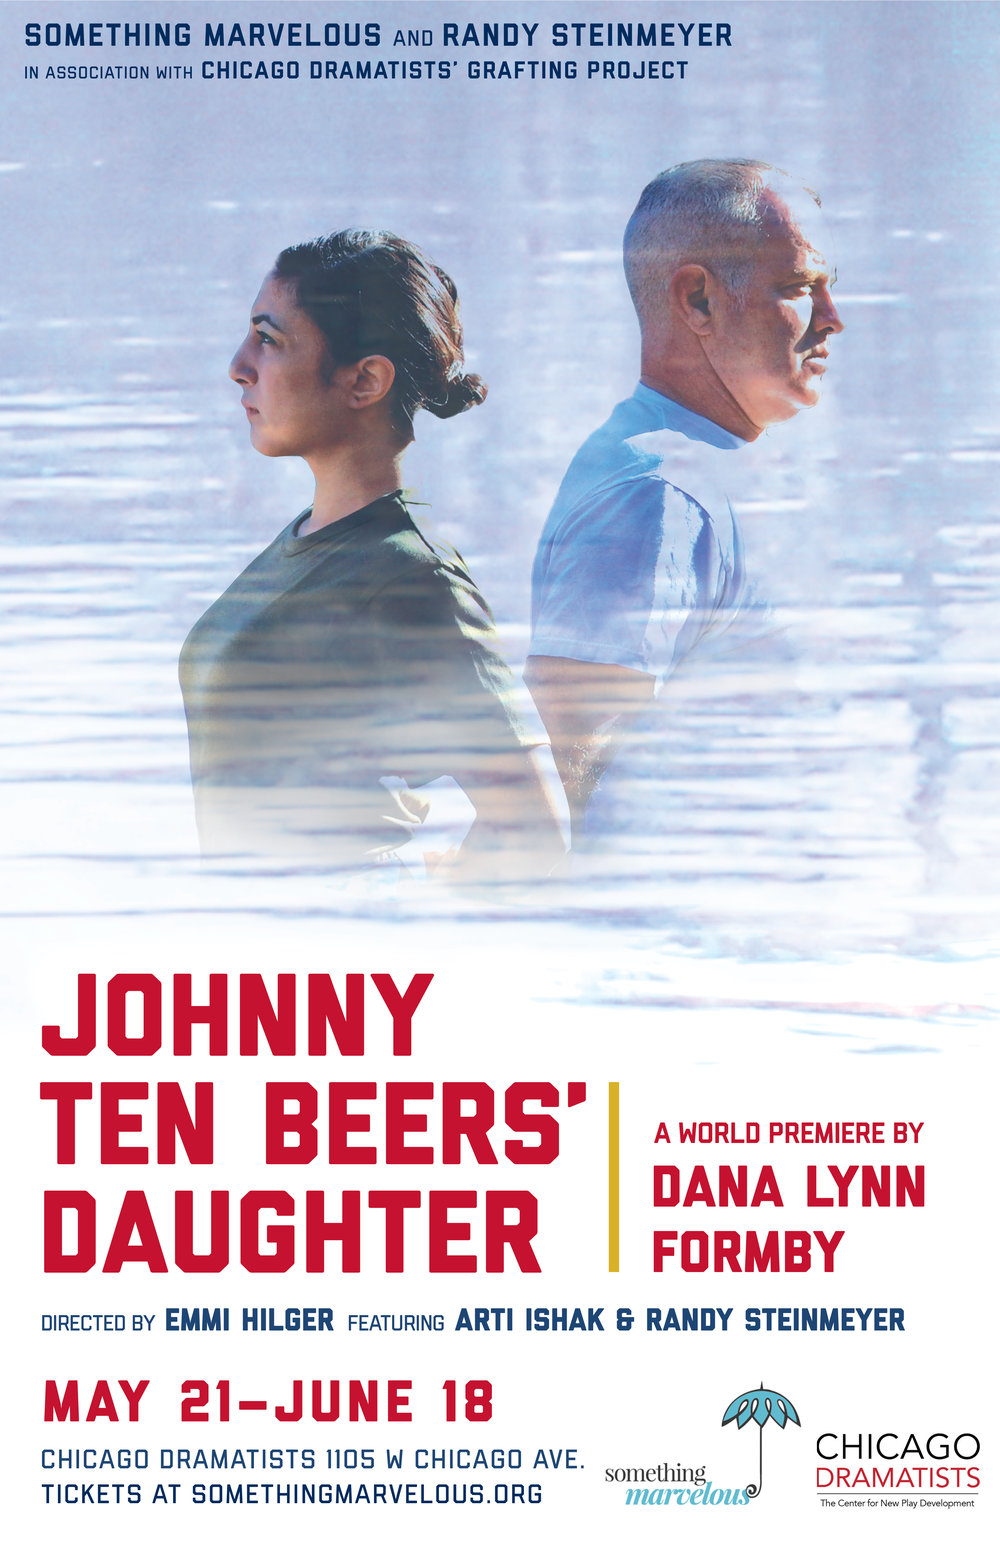 johnny10beersdaughter